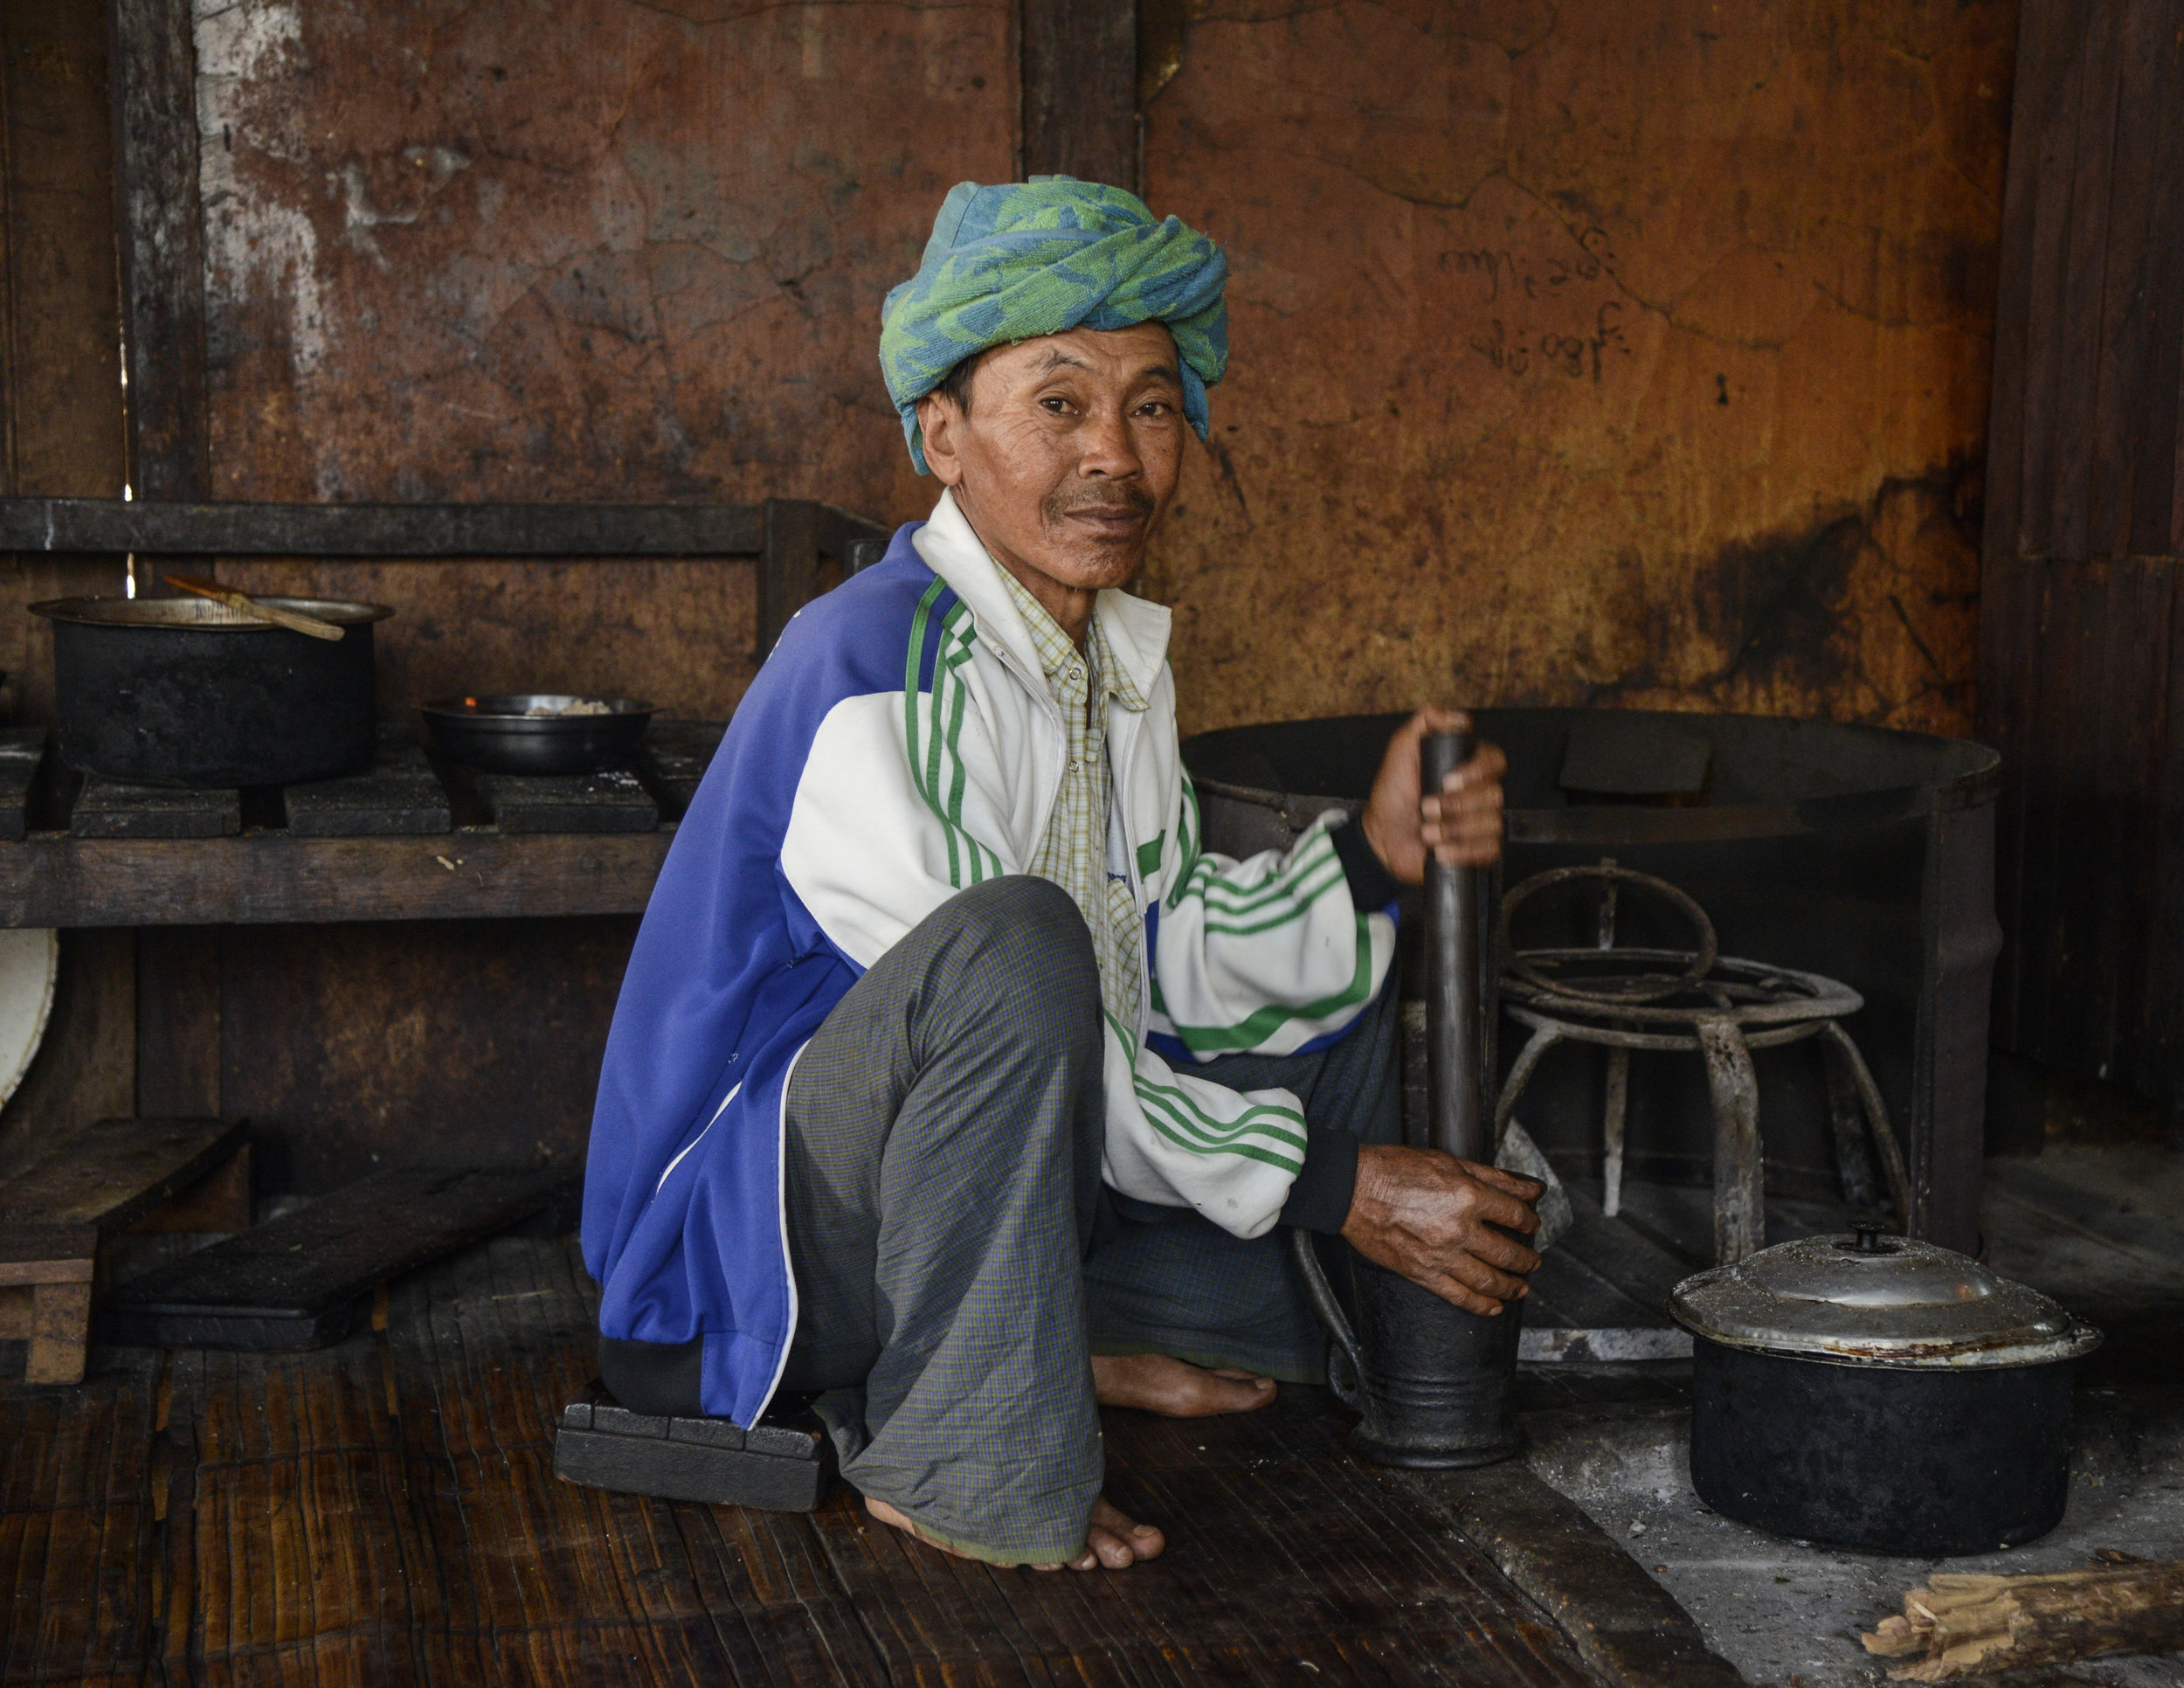 _4.21 Kitchen Worker, Baung Yay Cho Monastery, Myanmar.jpg